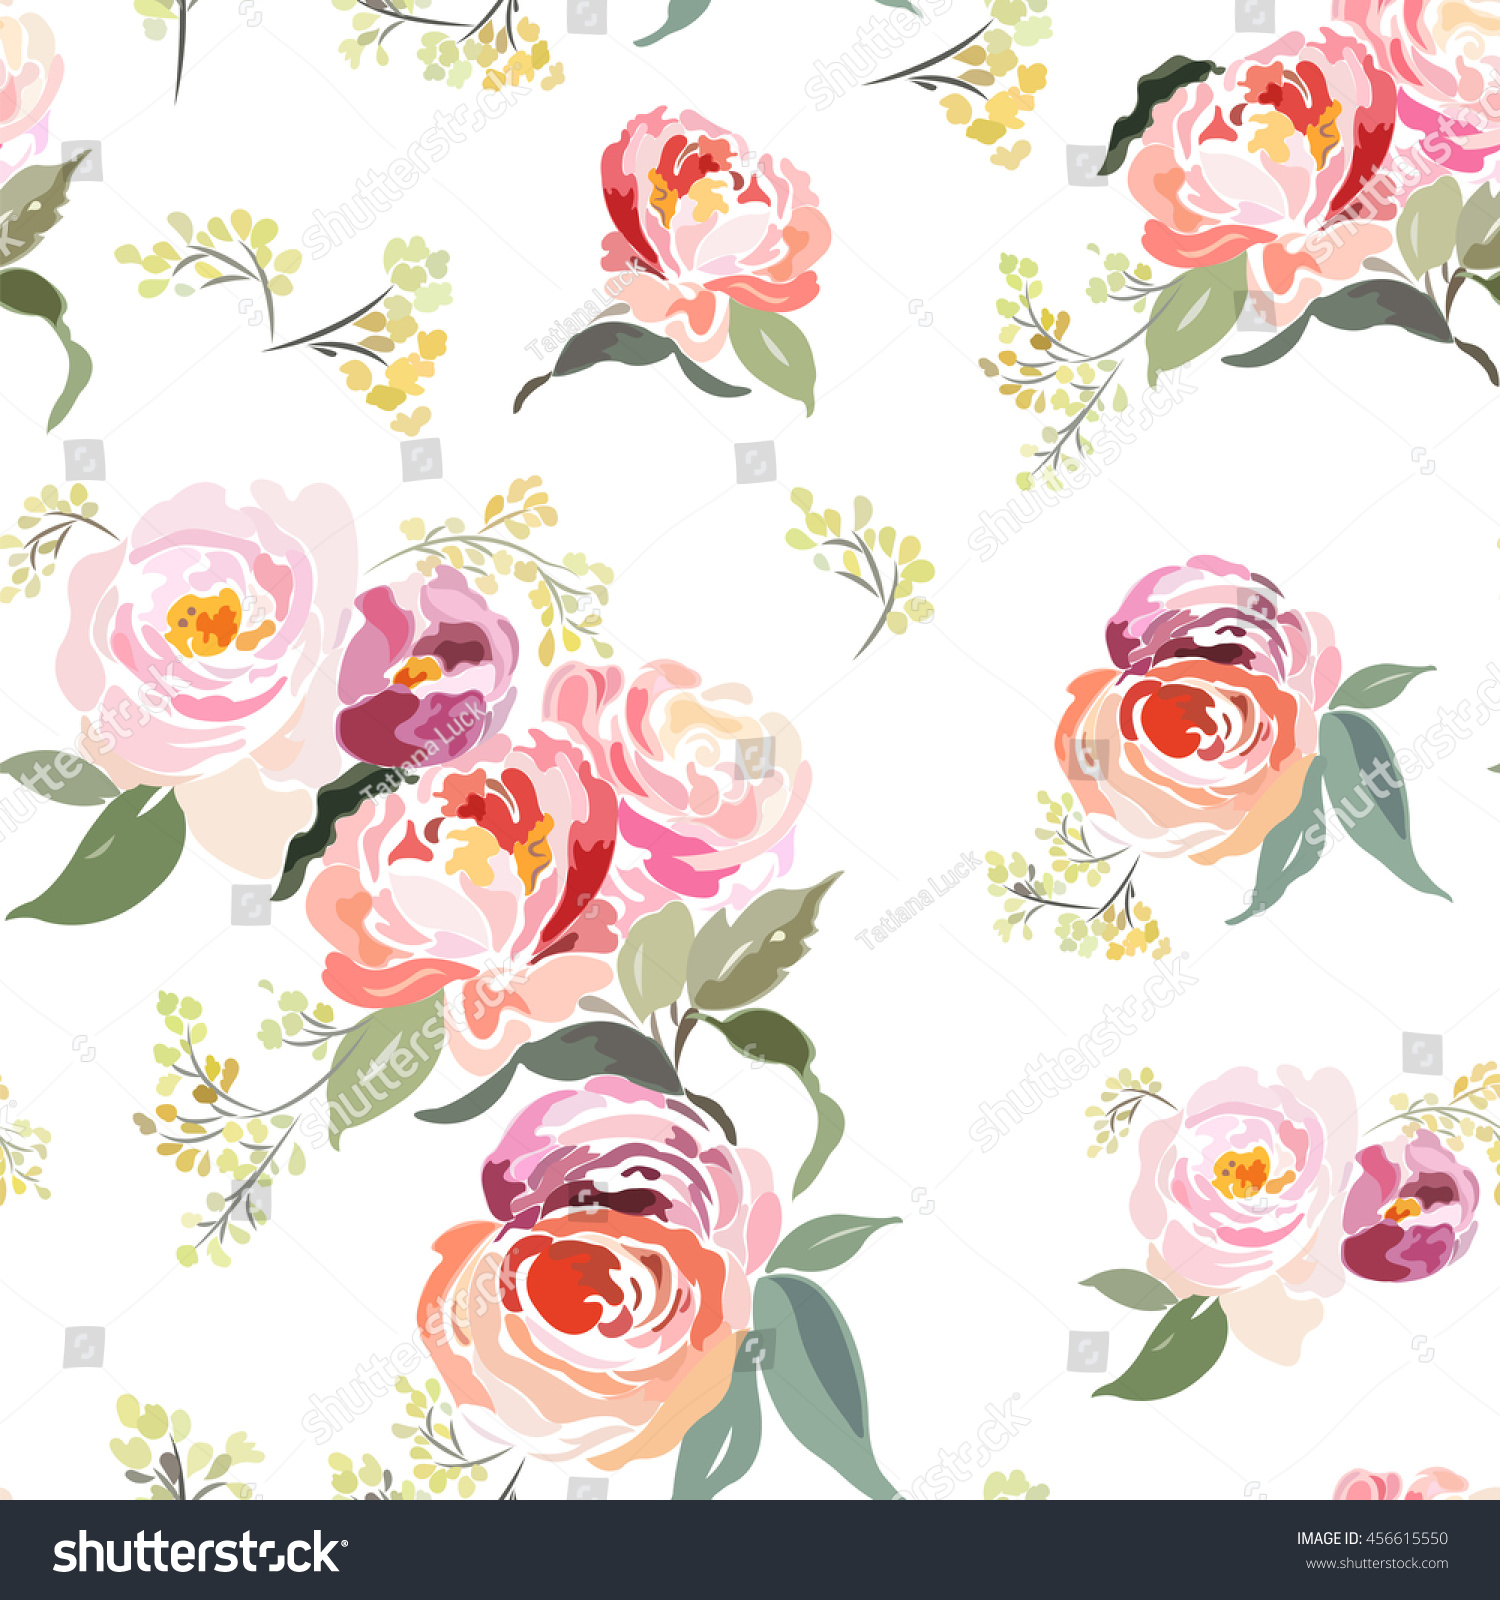 Seamless floral pattern with roses on a white background